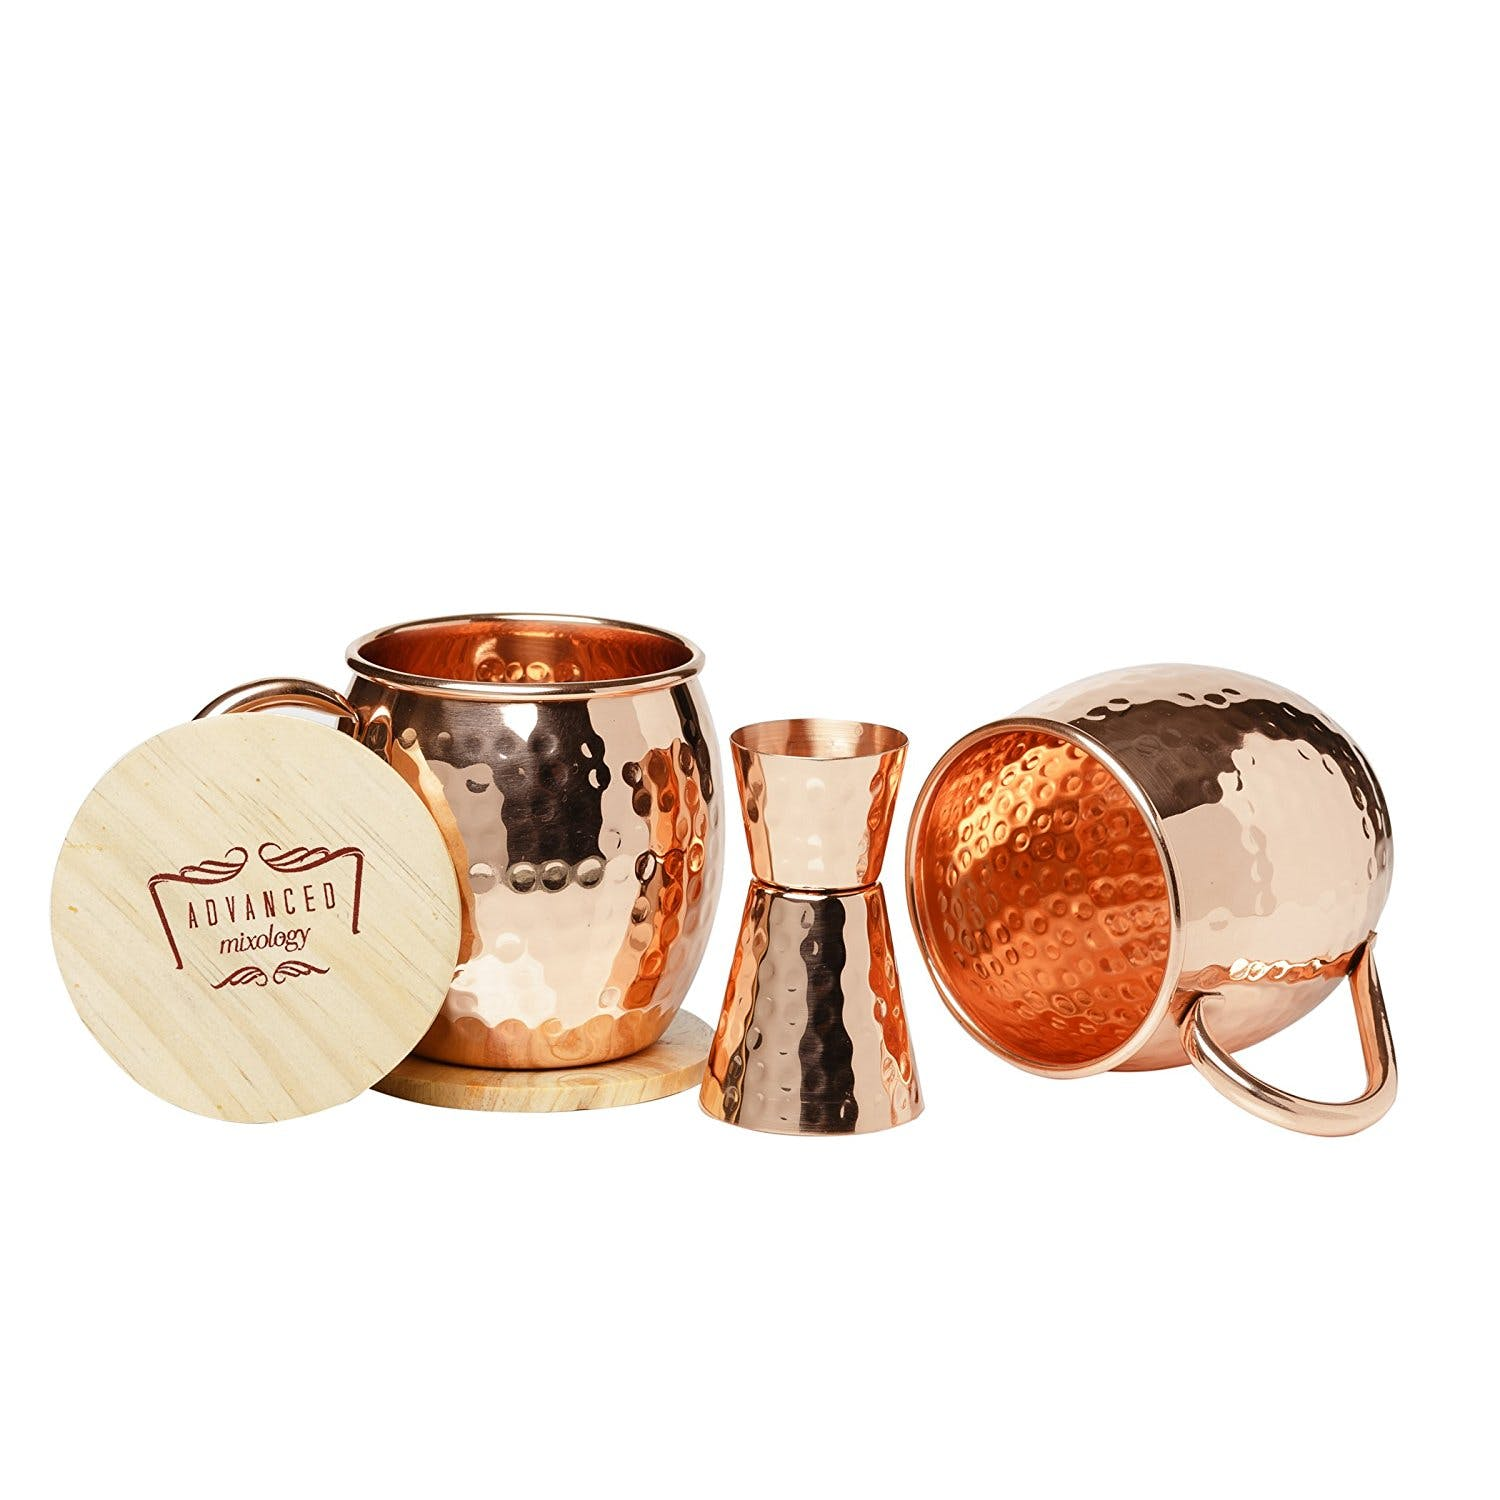 Advanced Mixology 100% Pure Copper Moscow Mule Mugs Set of 2 16 Oz Each | Authentic, Hammered, Handcrafted Cups with Welded Copper Handles | Gift Box Includes Bonus Copper Jigger & Wooden Coasters - sold by Advanced Mixology